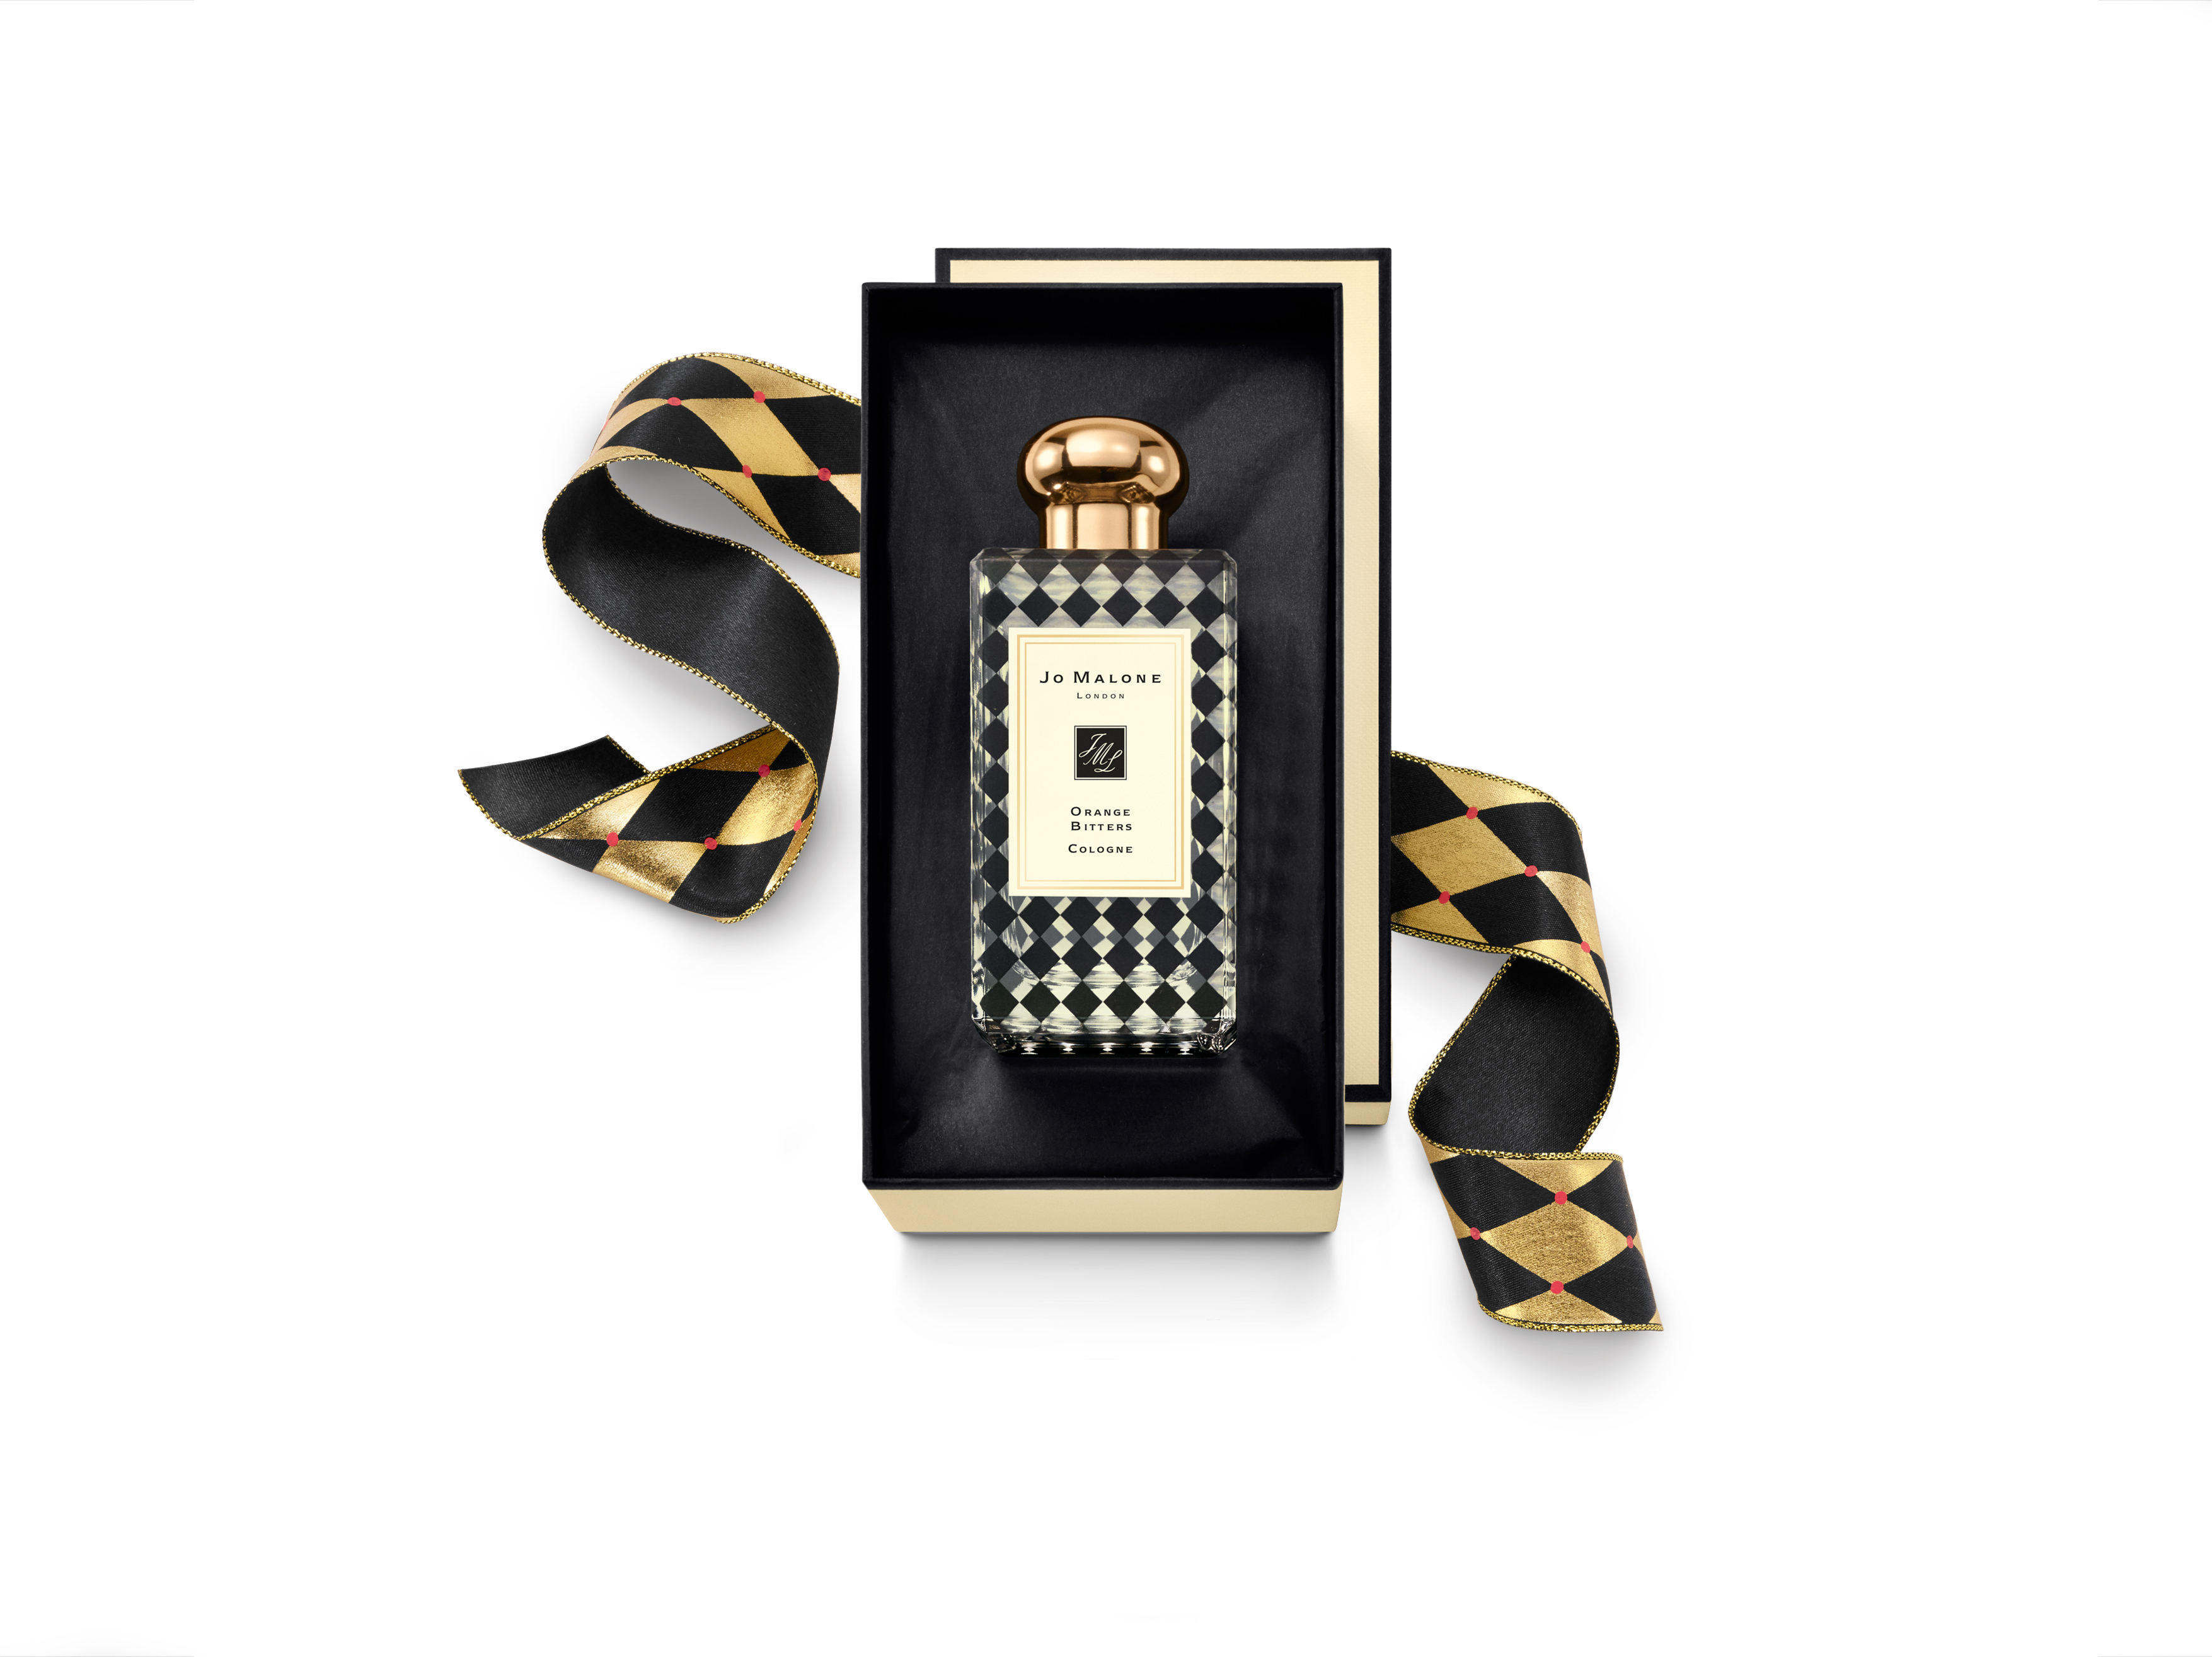 A fragrance from Jo Malone London's upcoming holiday range.